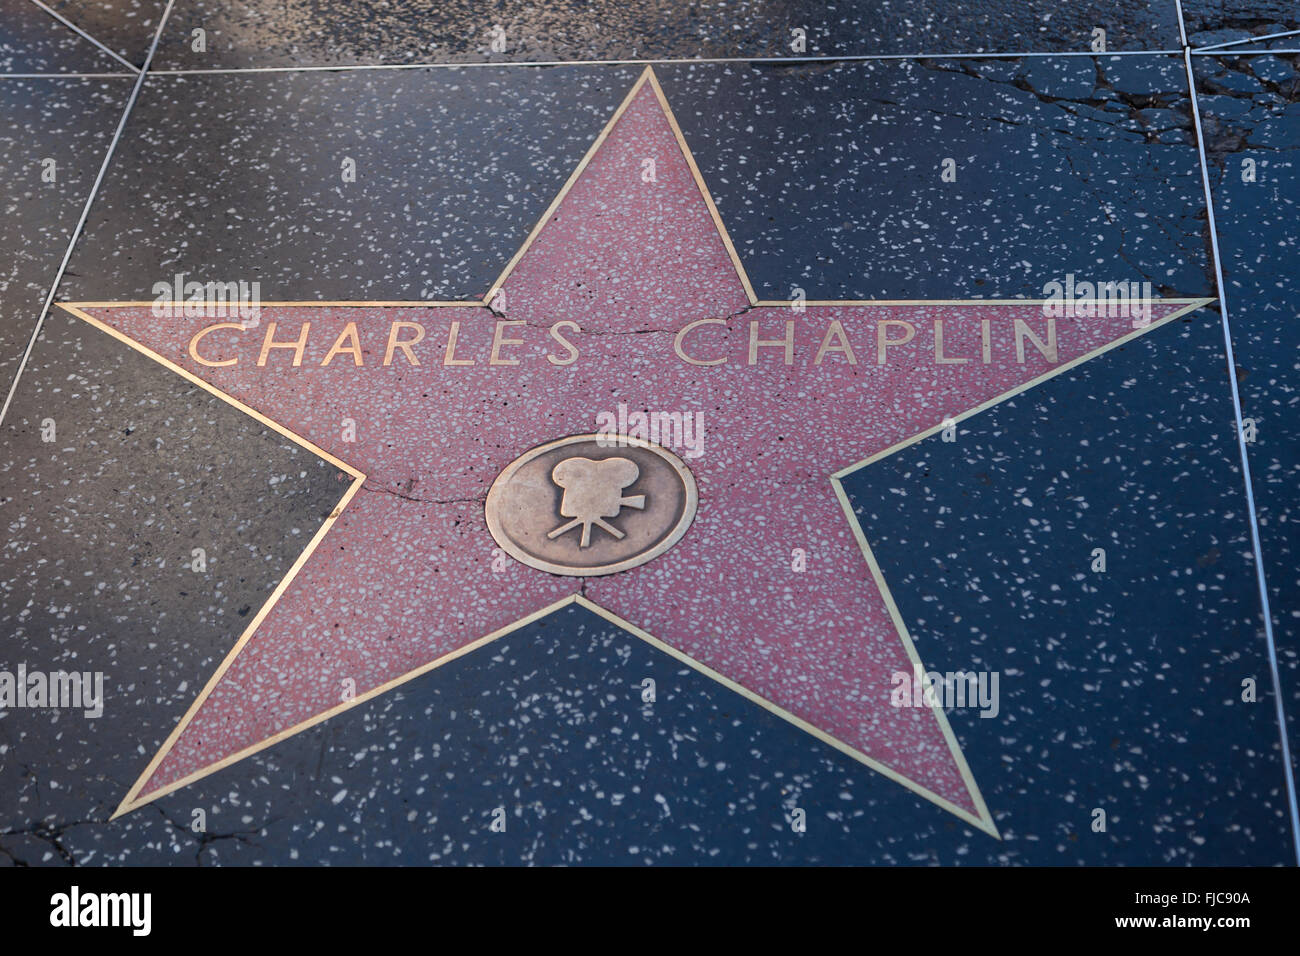 HOLLYWOOD, CALIFORNIA - February 8 2015: Charles Caplin's Hollywood Walk of Fame star on February 8, 2015 in - Stock Image